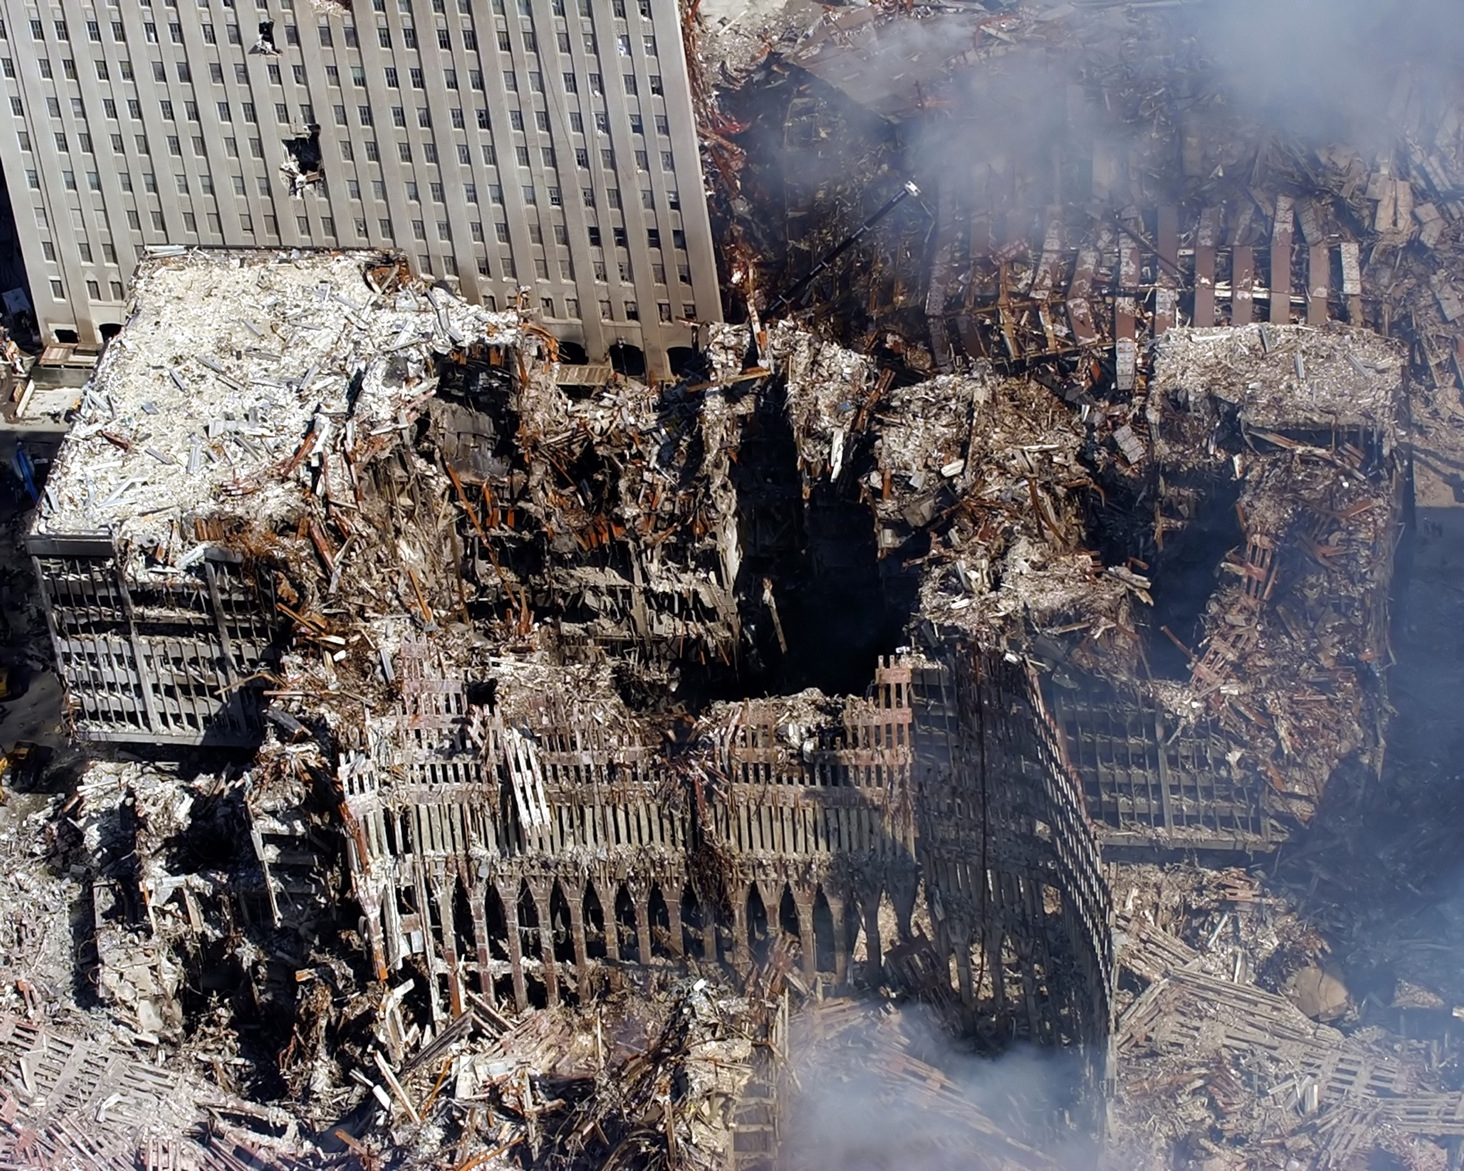 Touching a Nerve: How TV, Film, and Music Adjusted to 9/11